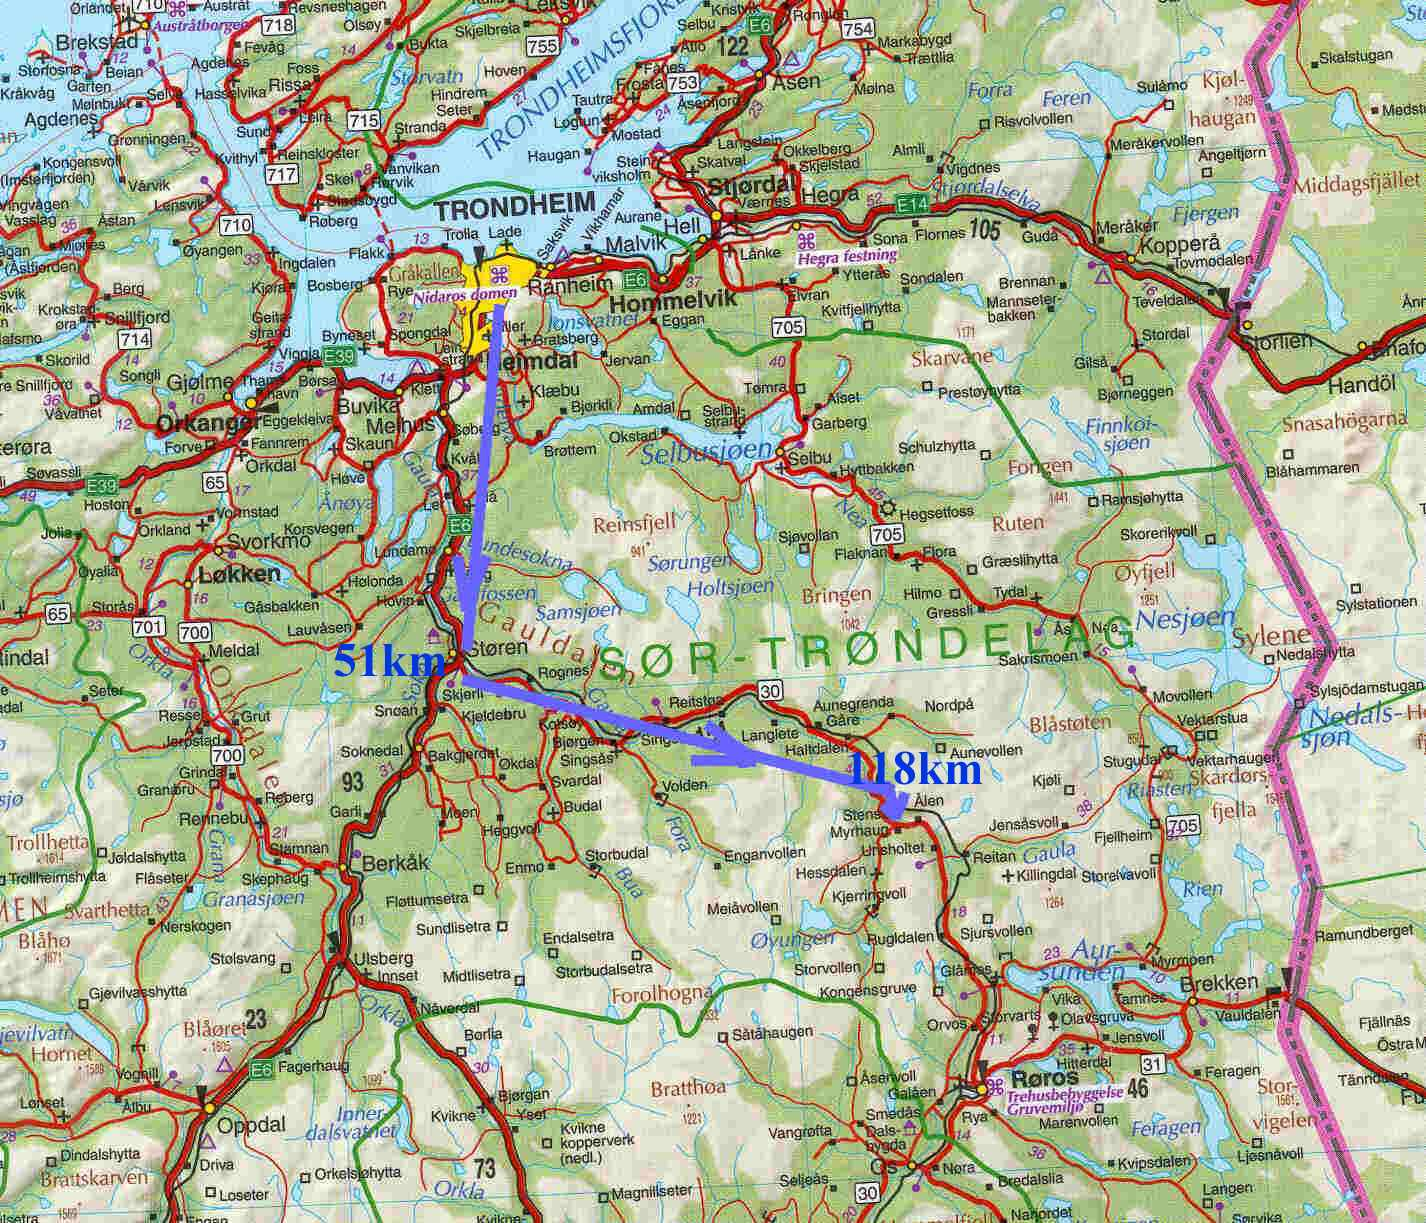 Project Hessdalen Travel